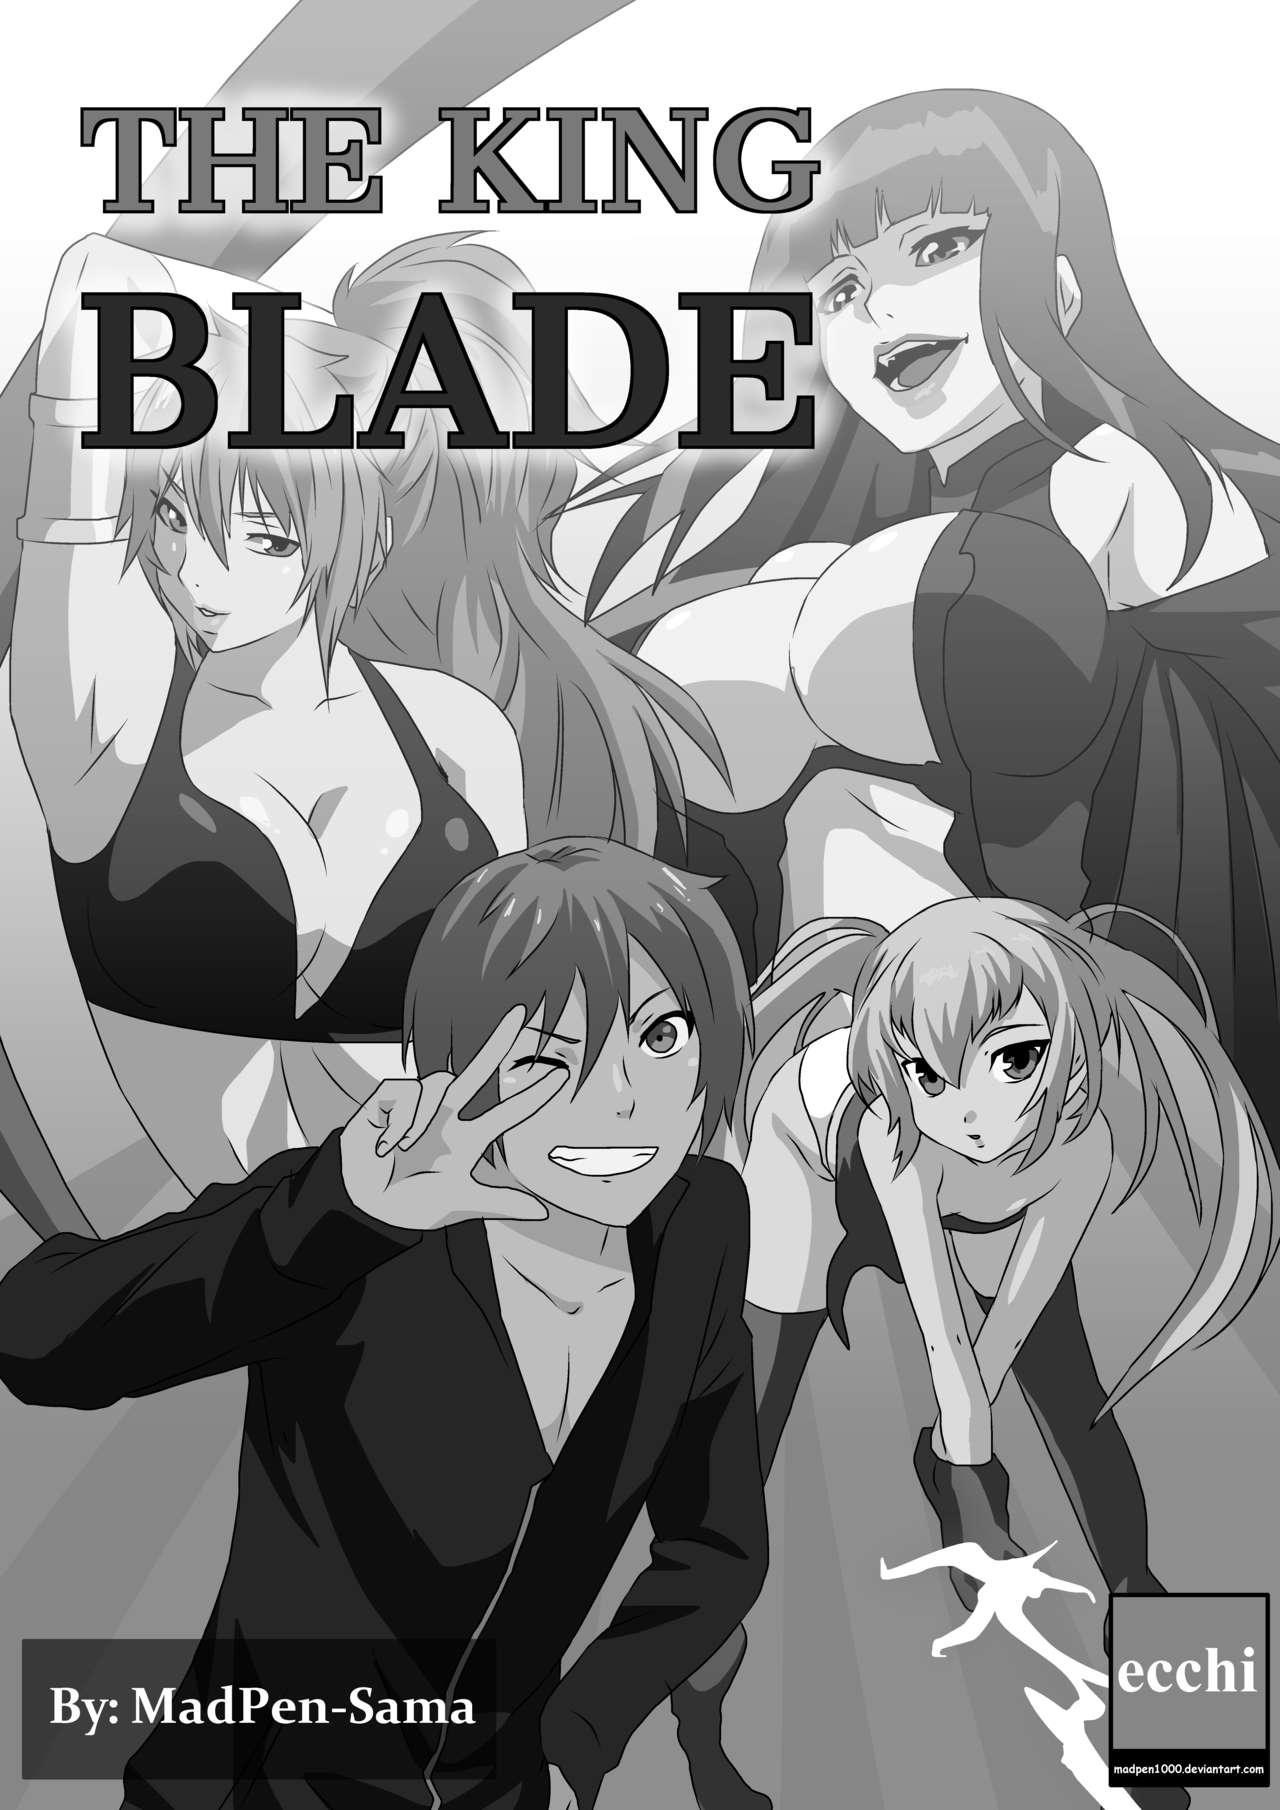 The King Blade 1